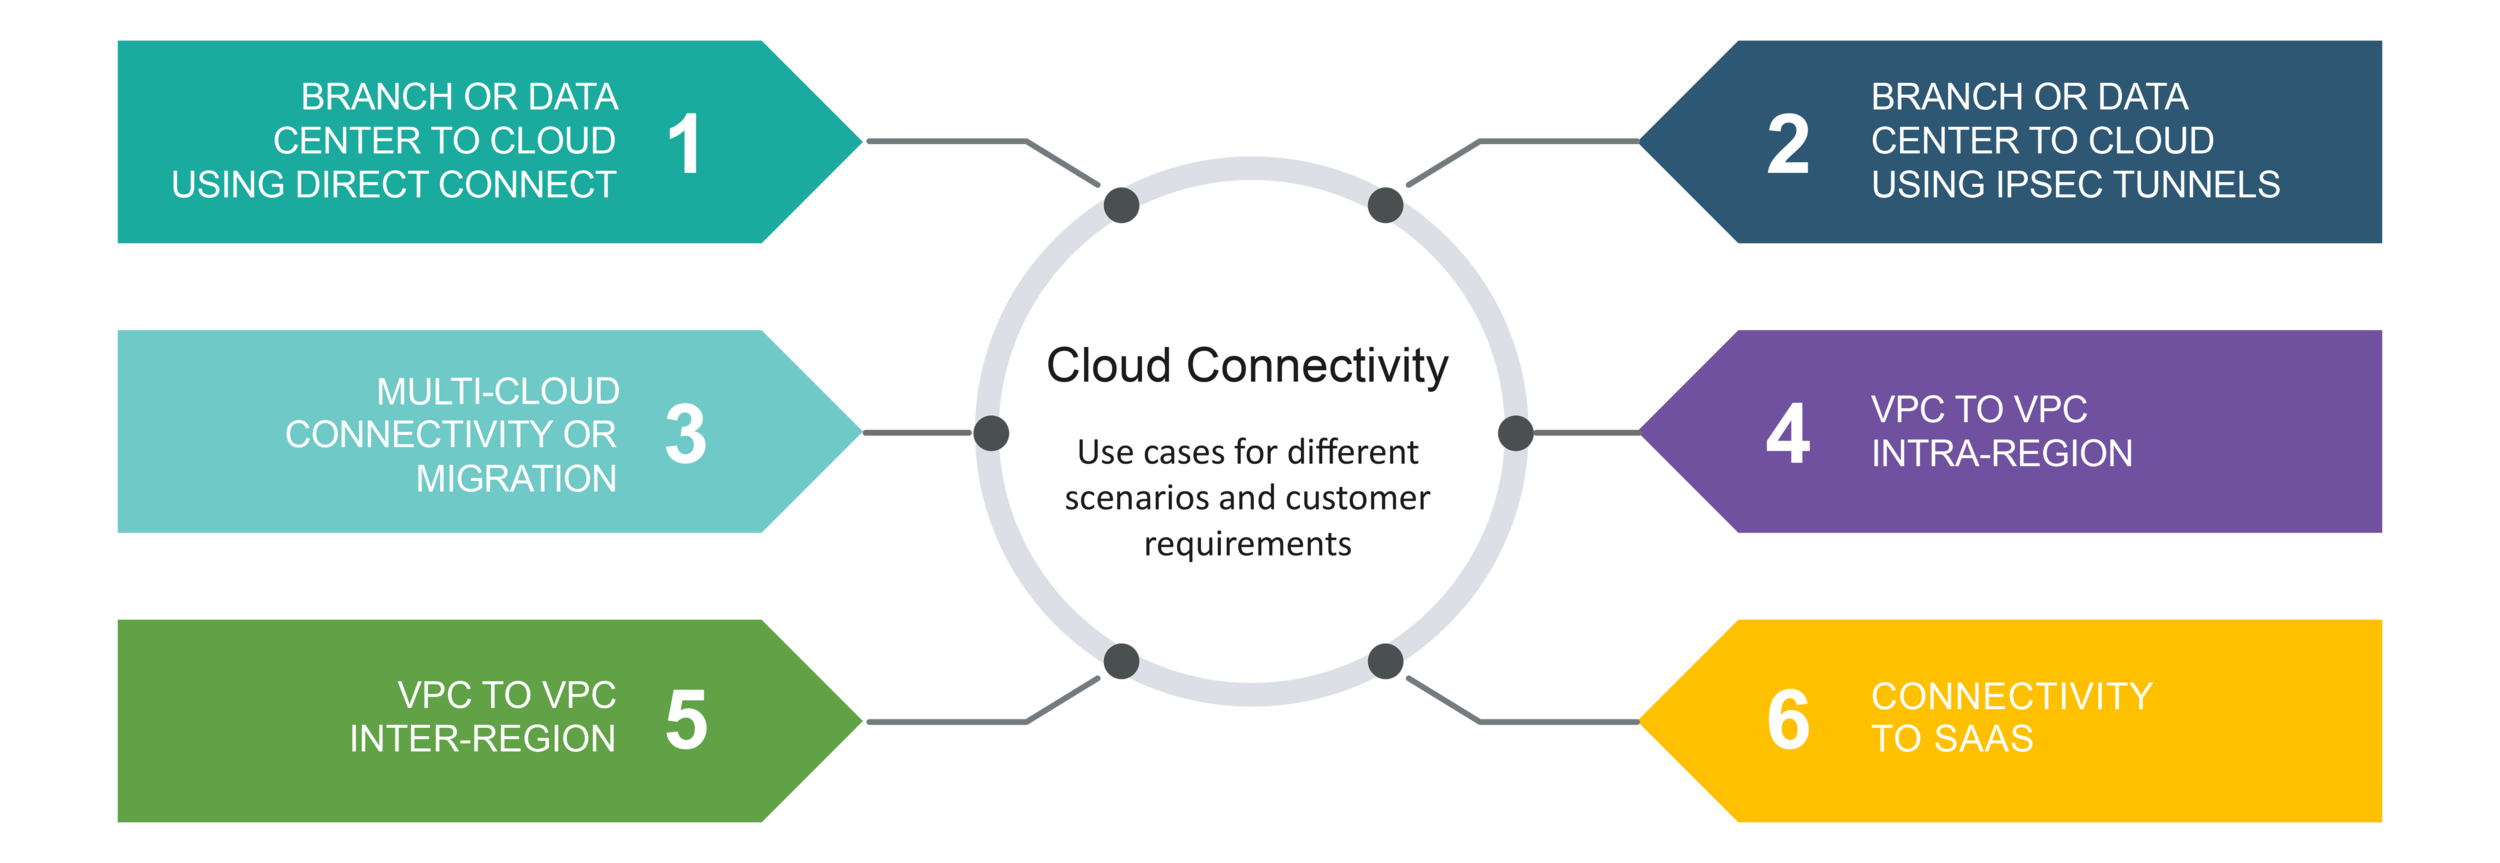 cloud-connectivity-sd-wan.png